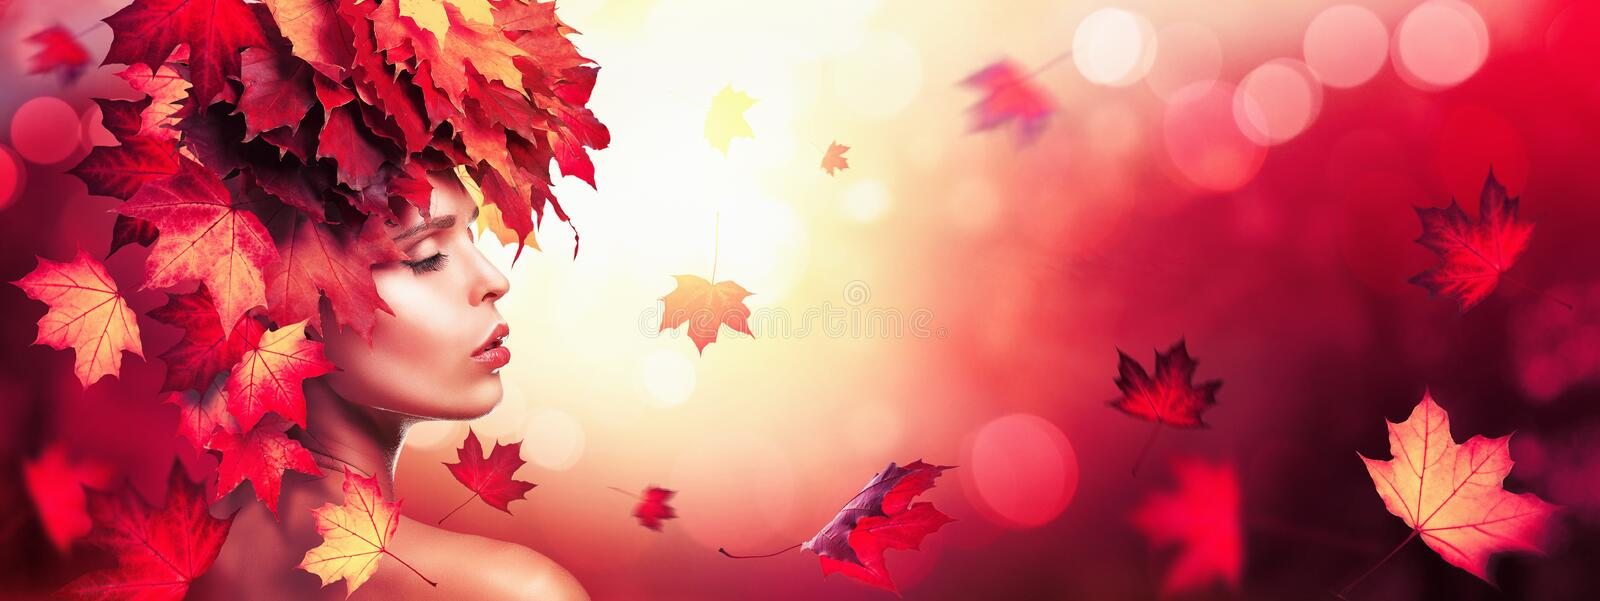 Autumn Beautiful Woman With Falling sidor över naturen Backgroun royaltyfri fotografi